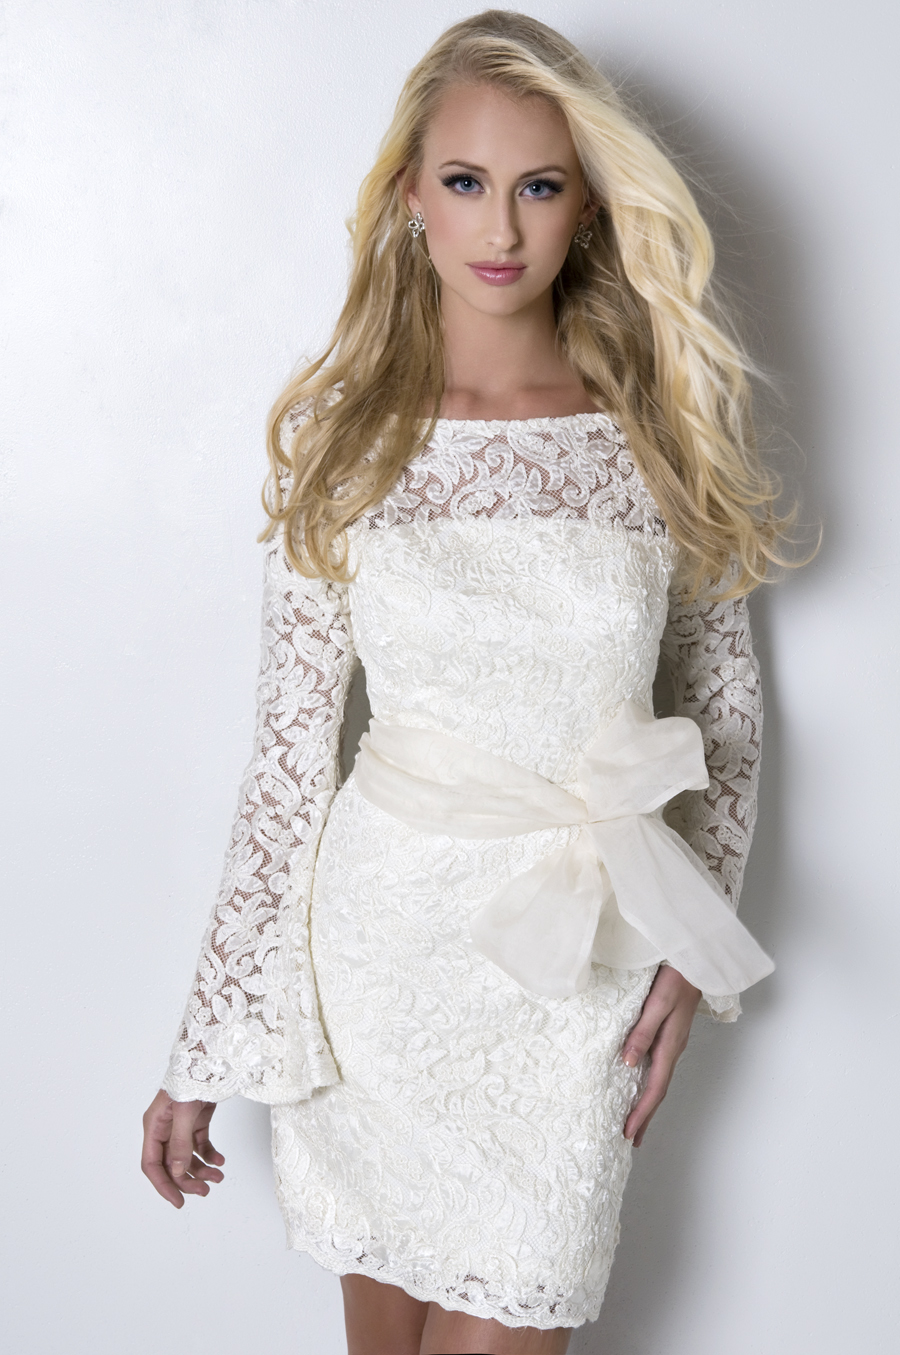 Lace Wedding Dresses, Fashion, white, Spring, Lace, Sleeves, Short, Wedding dress, Eugenia couture, high-neck, knee length, Short Wedding Dresses, Spring Wedding Dresses, High Neck Wedding Dresses